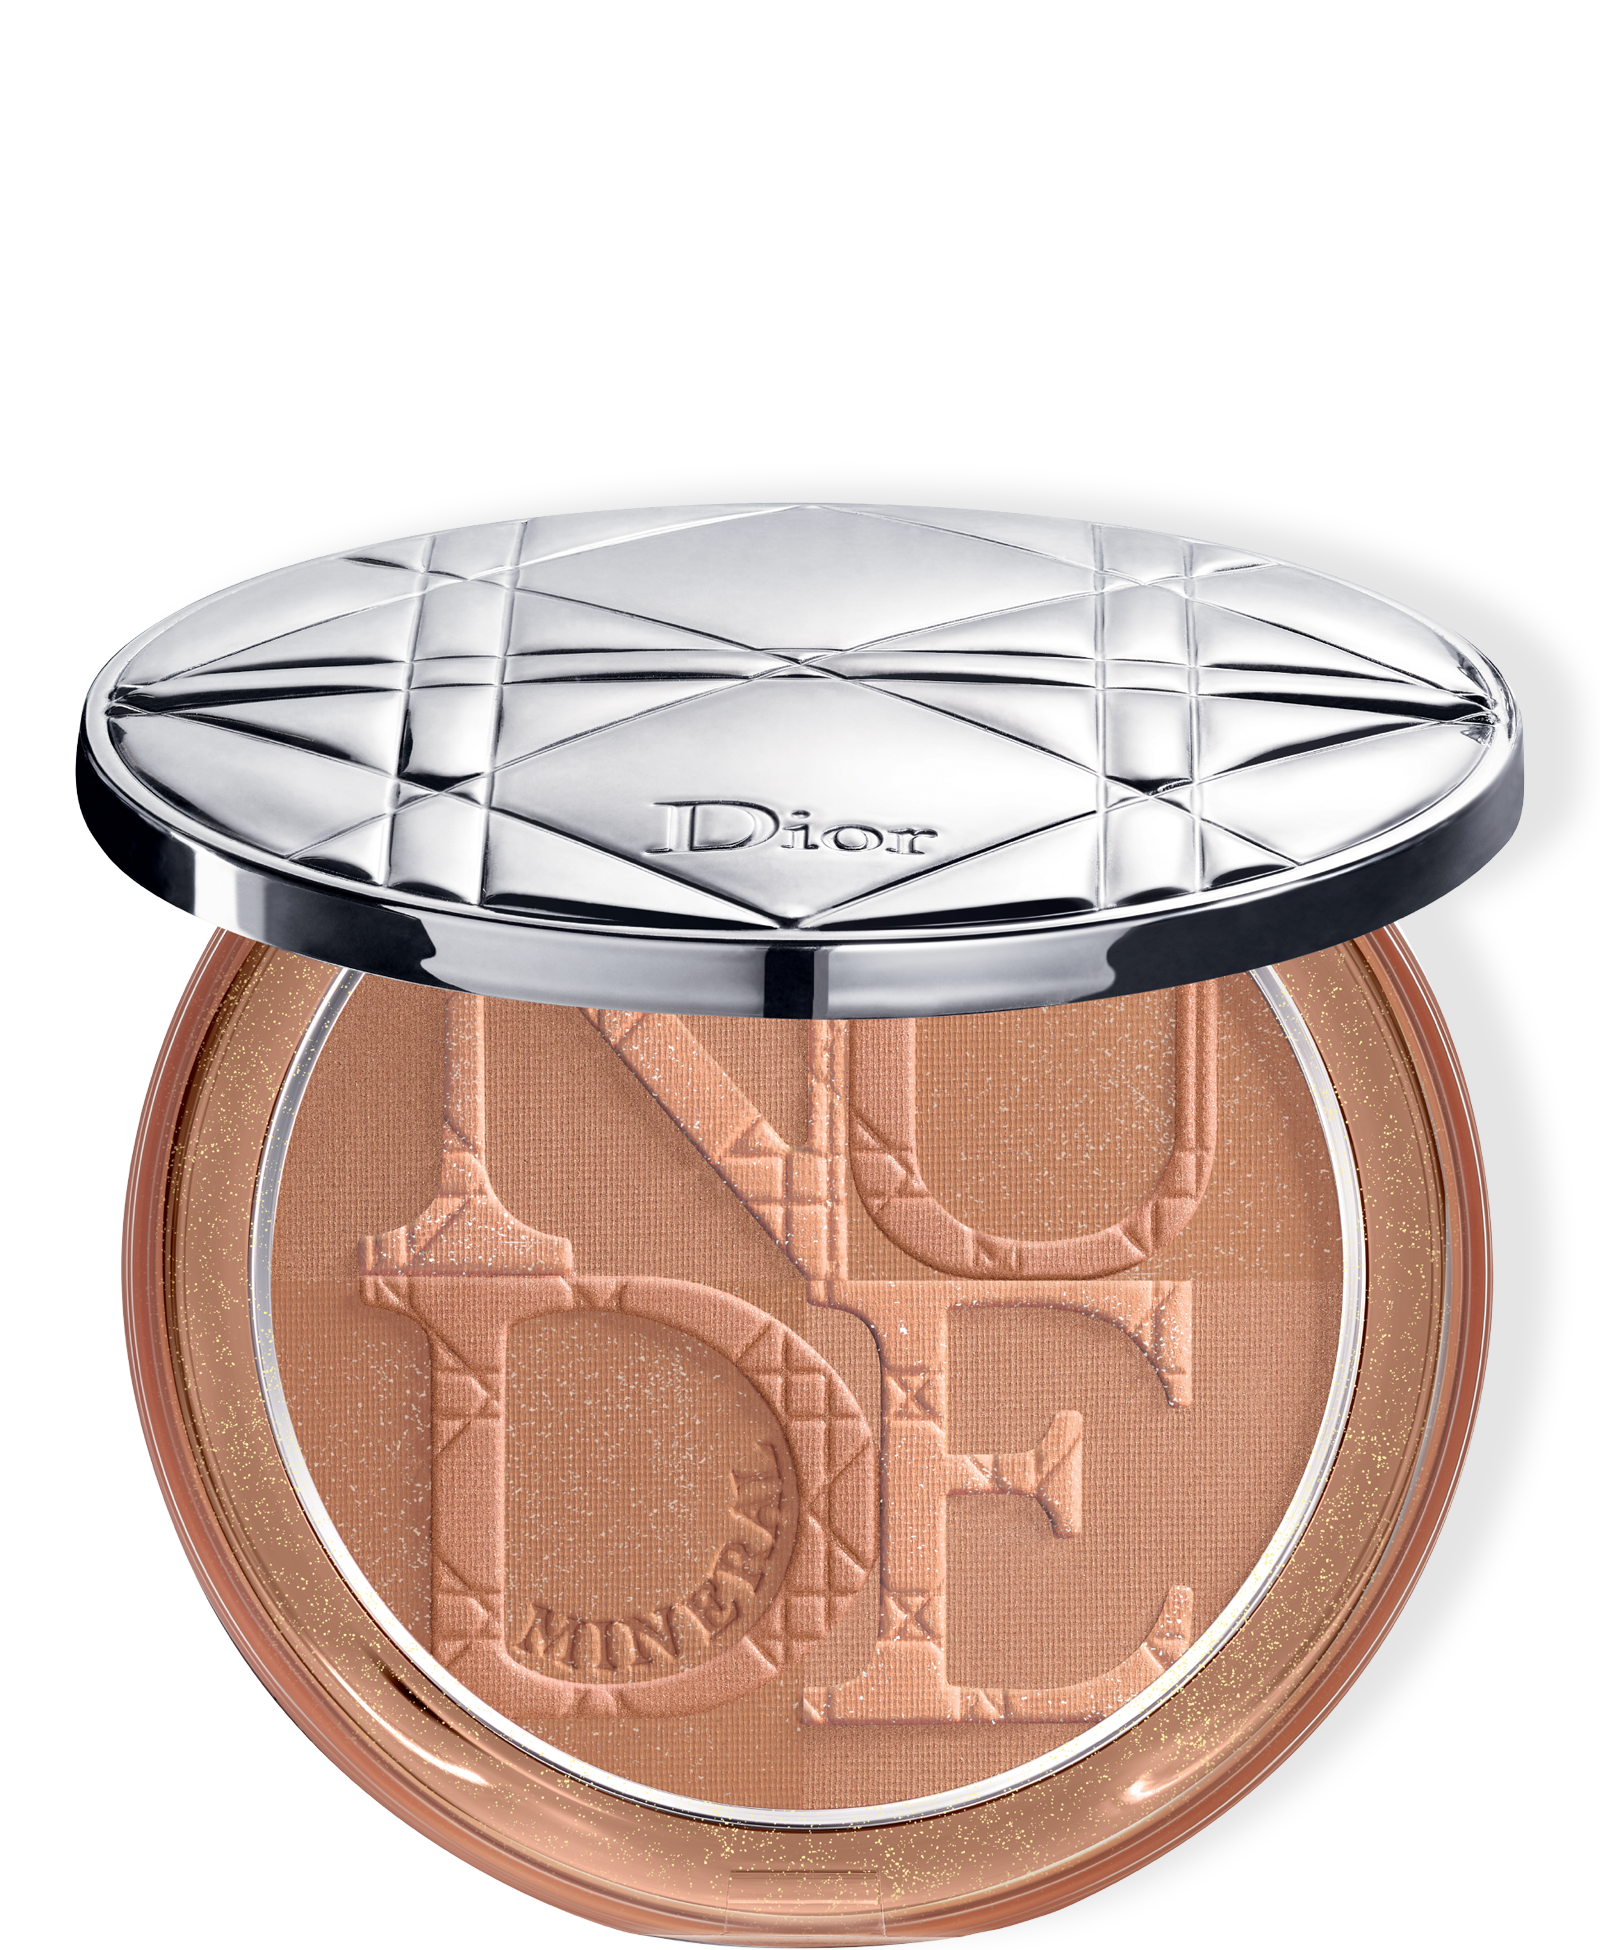 Diorskin Mineral Nude Bronze Powder 003 Soft Sundown